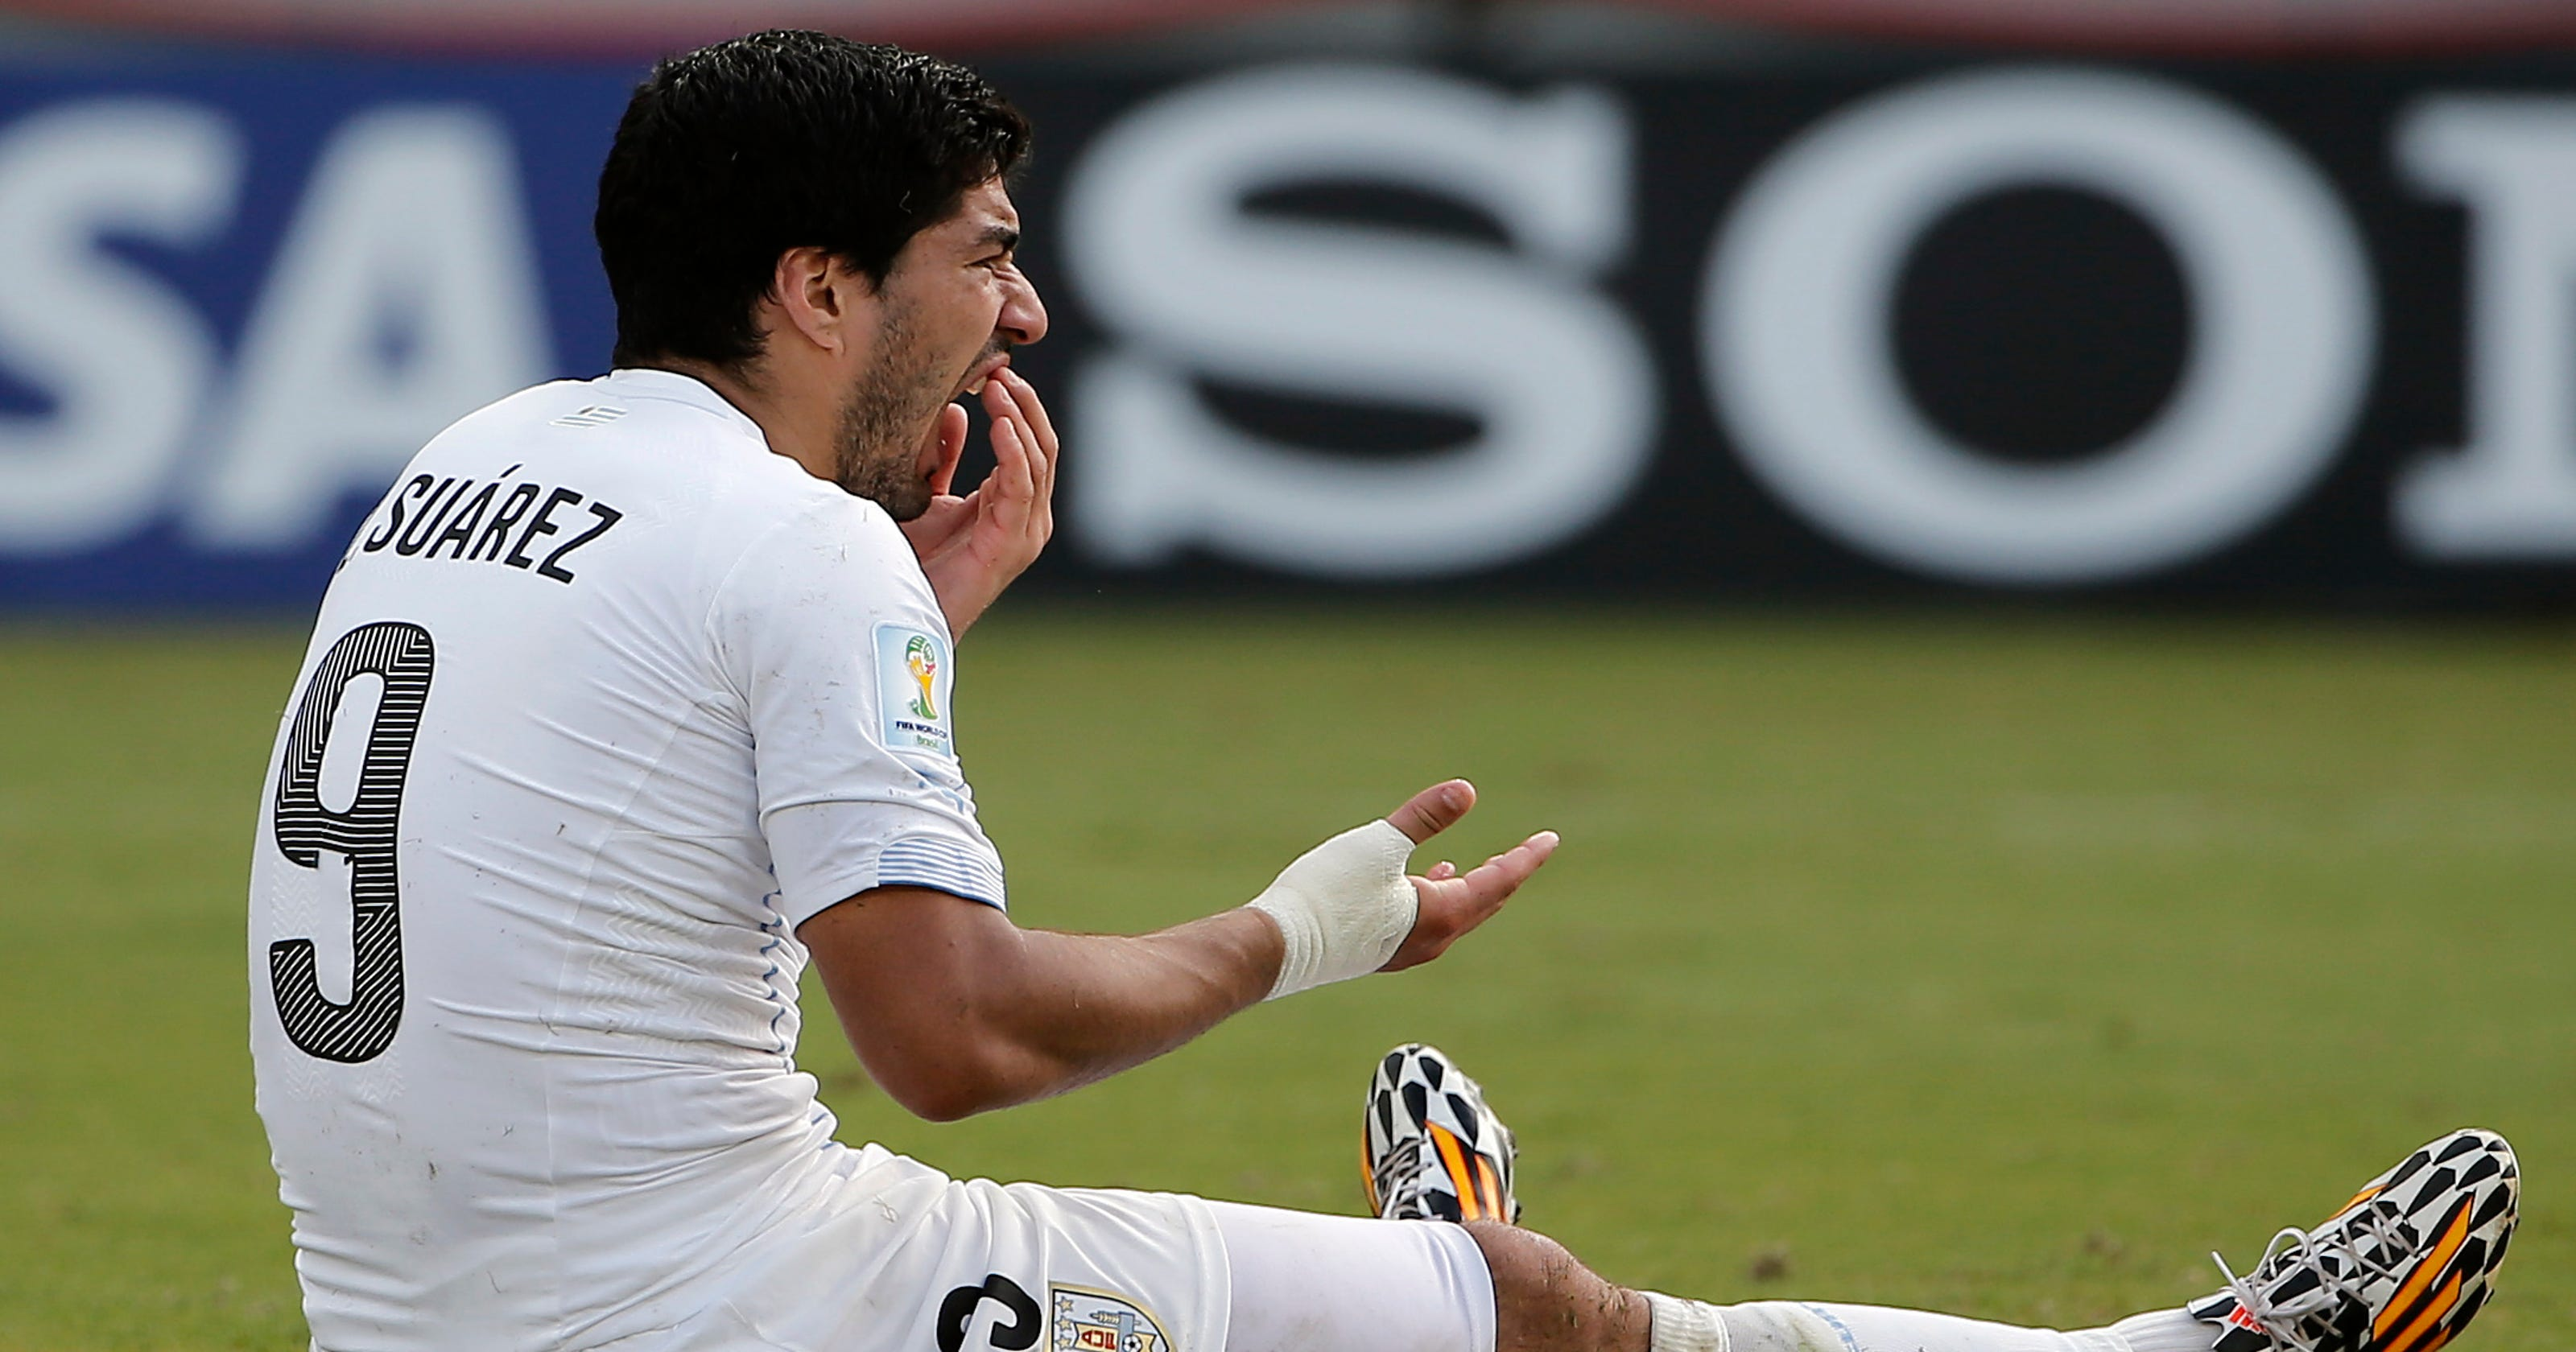 cad3cfb644c FIFA charges Luis Suarez for biting incident